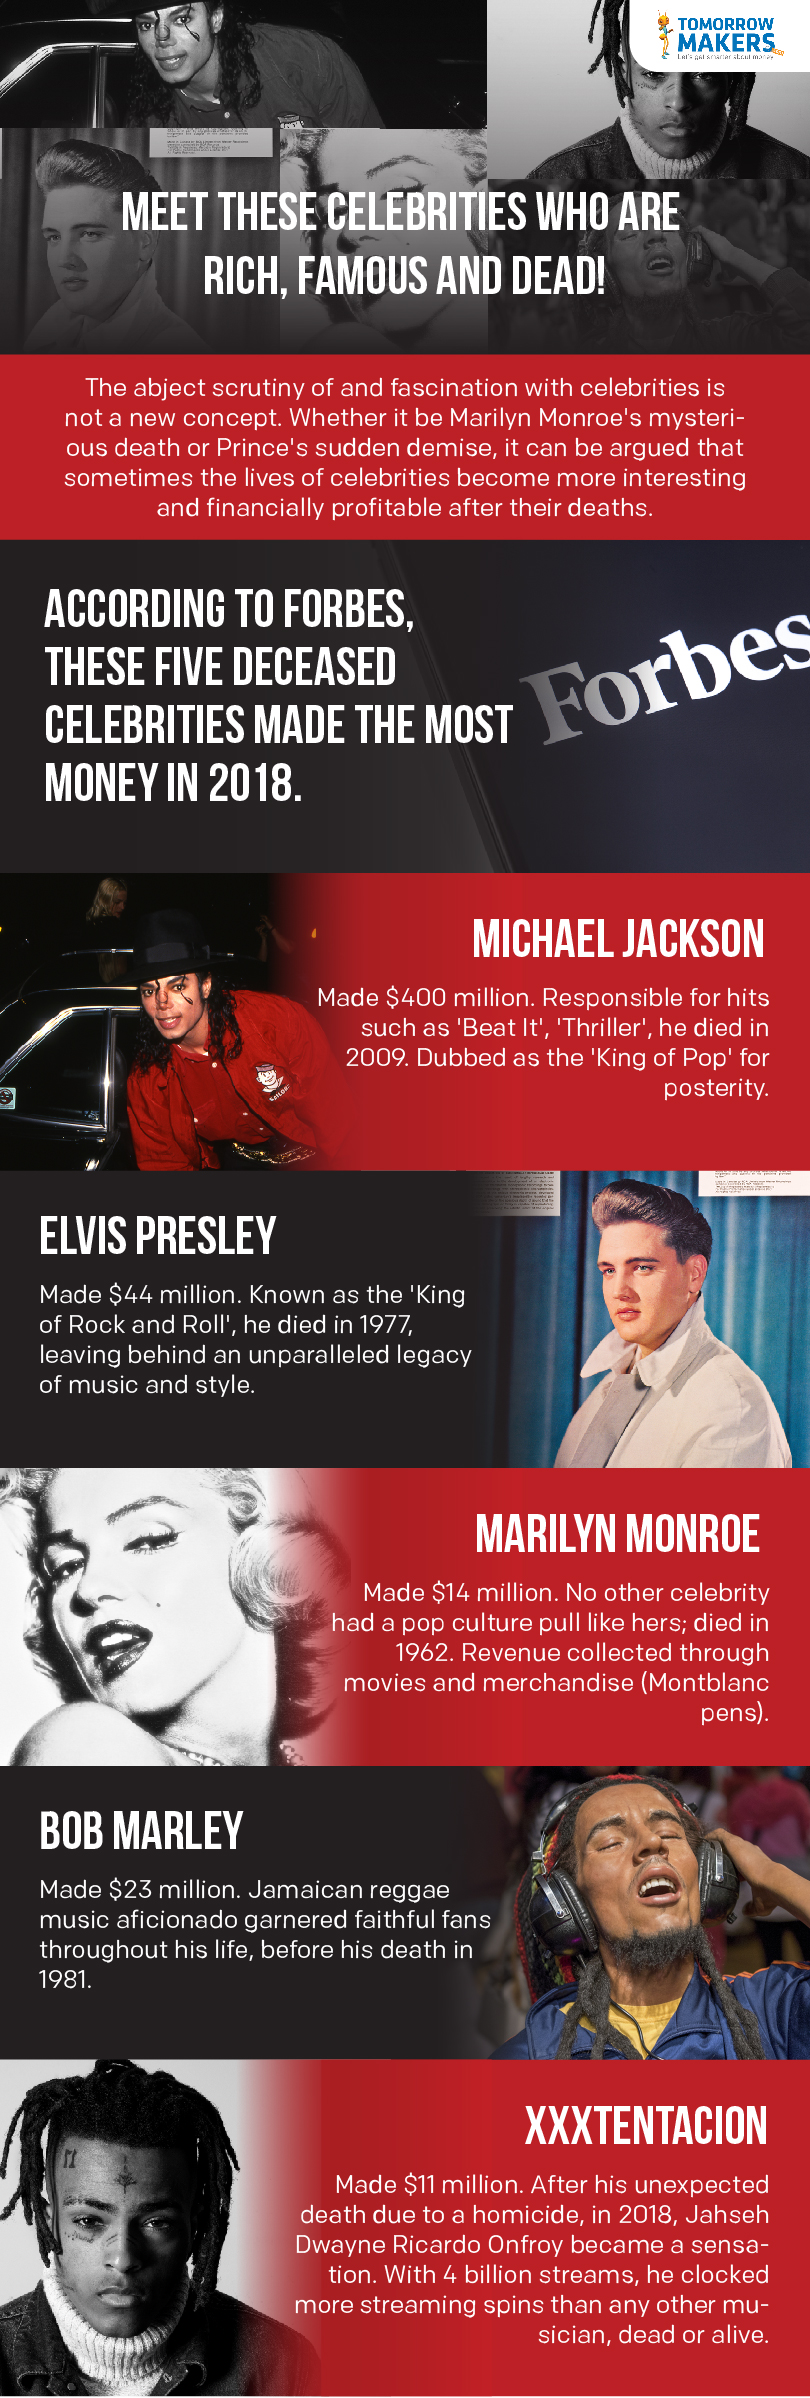 Meet these celebrities who are rich, famous and DEAD!